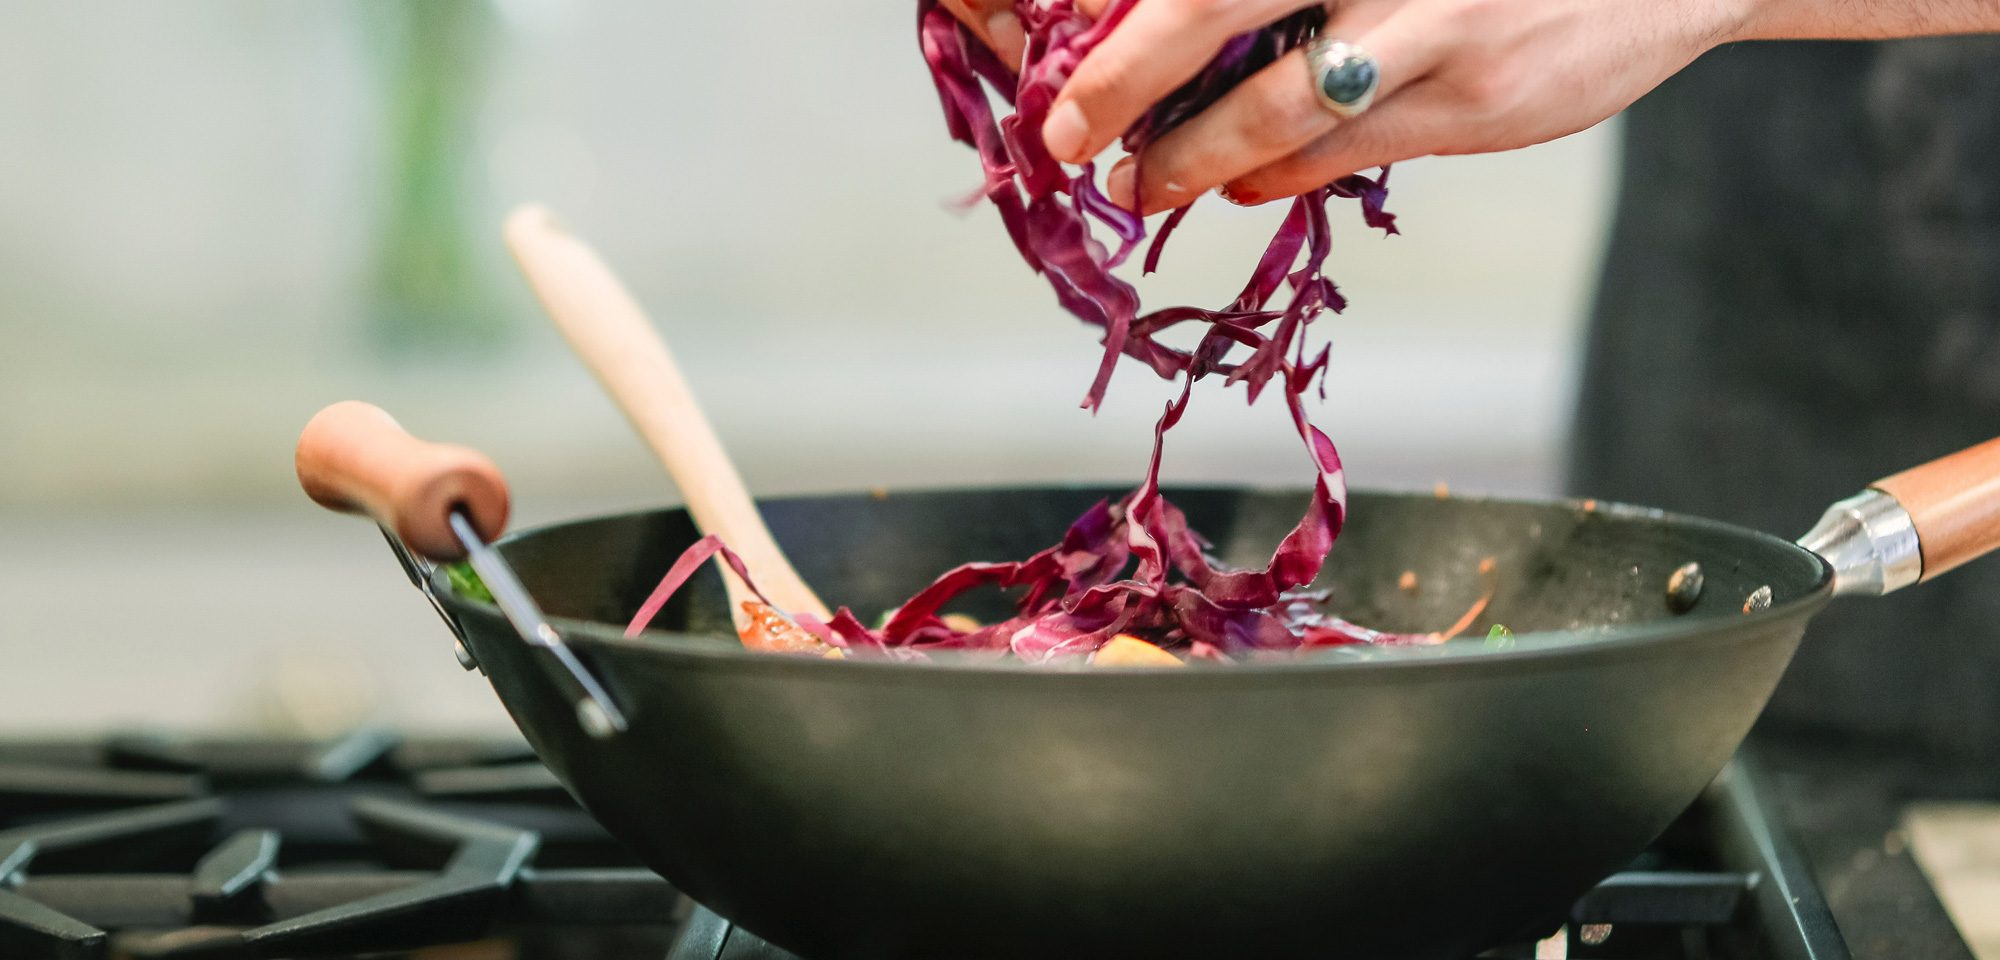 Red cabbage cooking